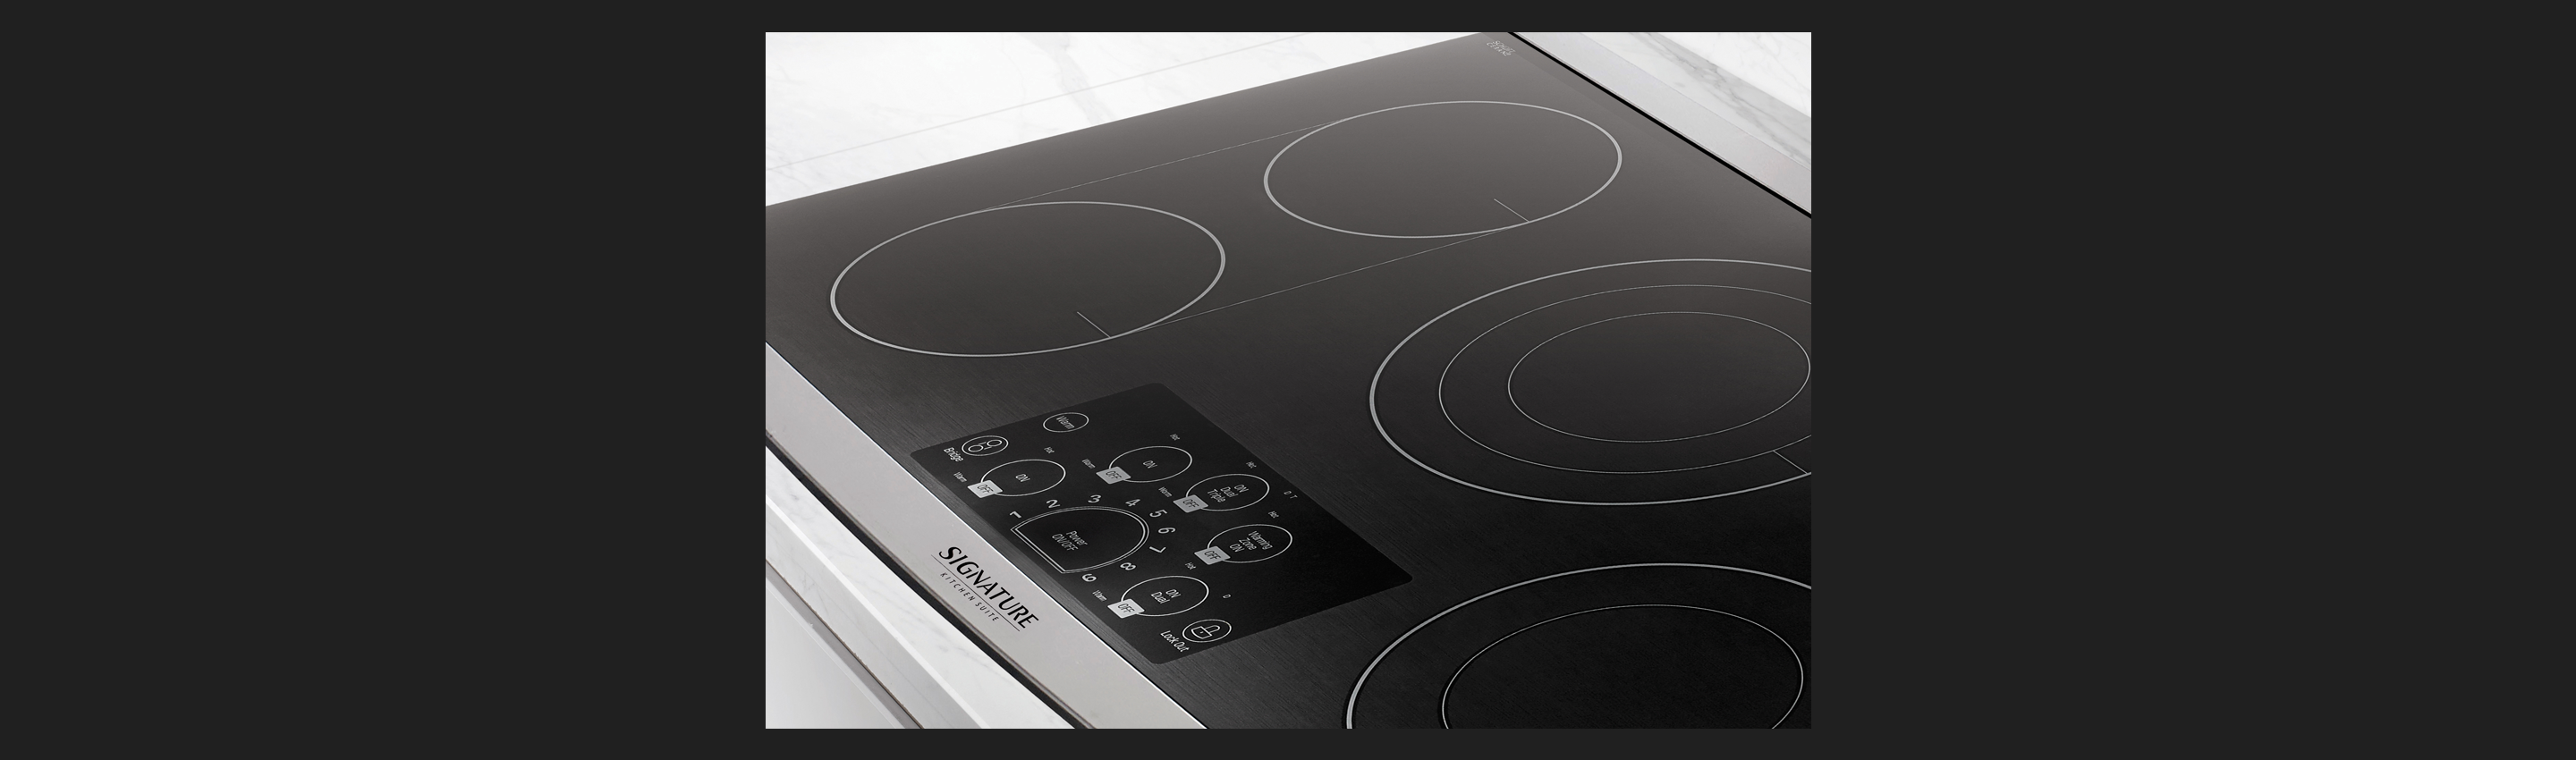 36 inch Electric Cooktop | Glass ceramic cooktop